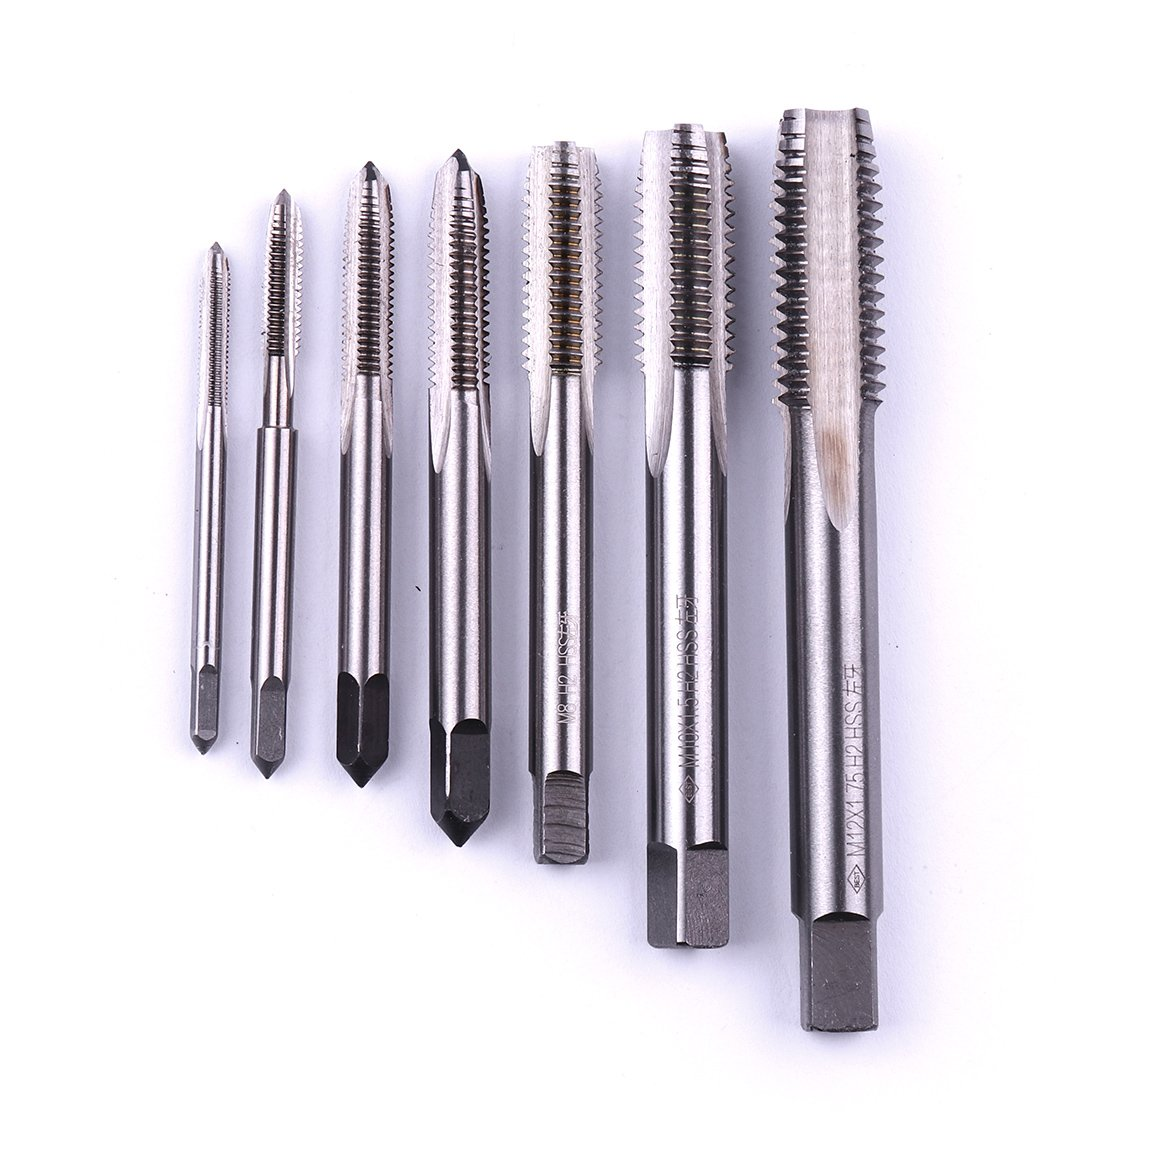 Atoplee 7pcs Metric HSS Left Hand Thread Tap M3-M12 by ATOPLEE